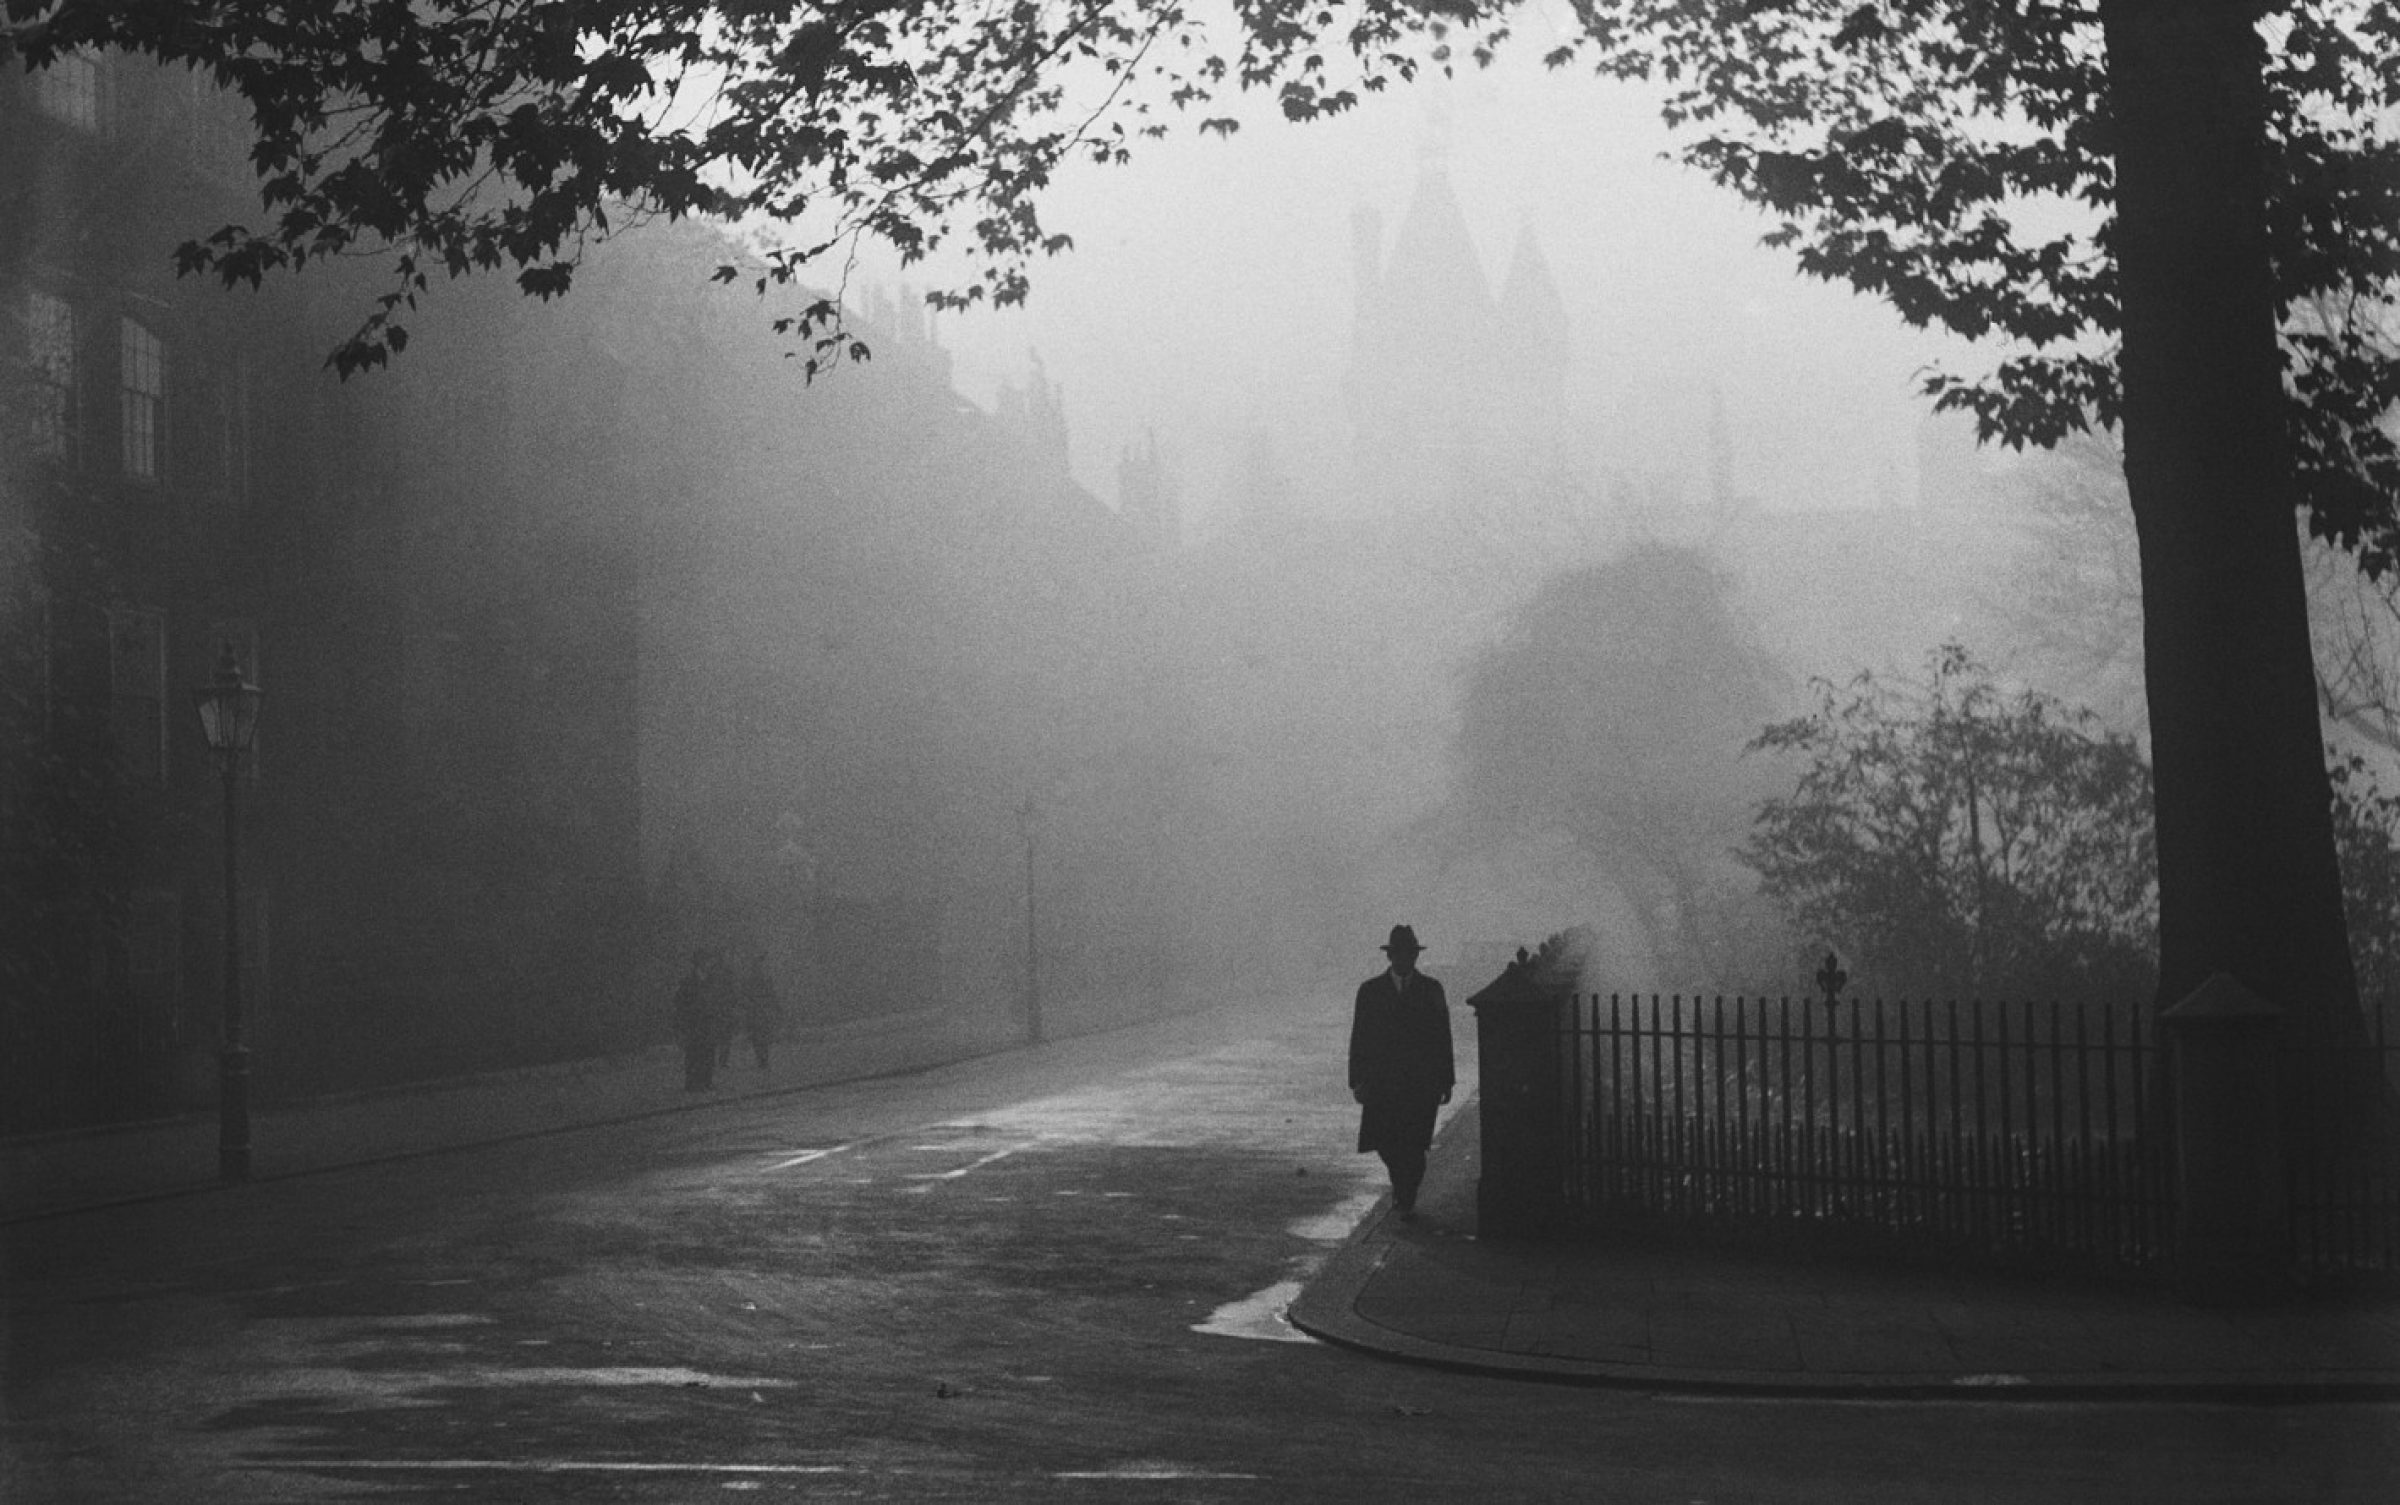 A foggy day in London, 1932. Credit: General Photographic Agency/Getty Images.